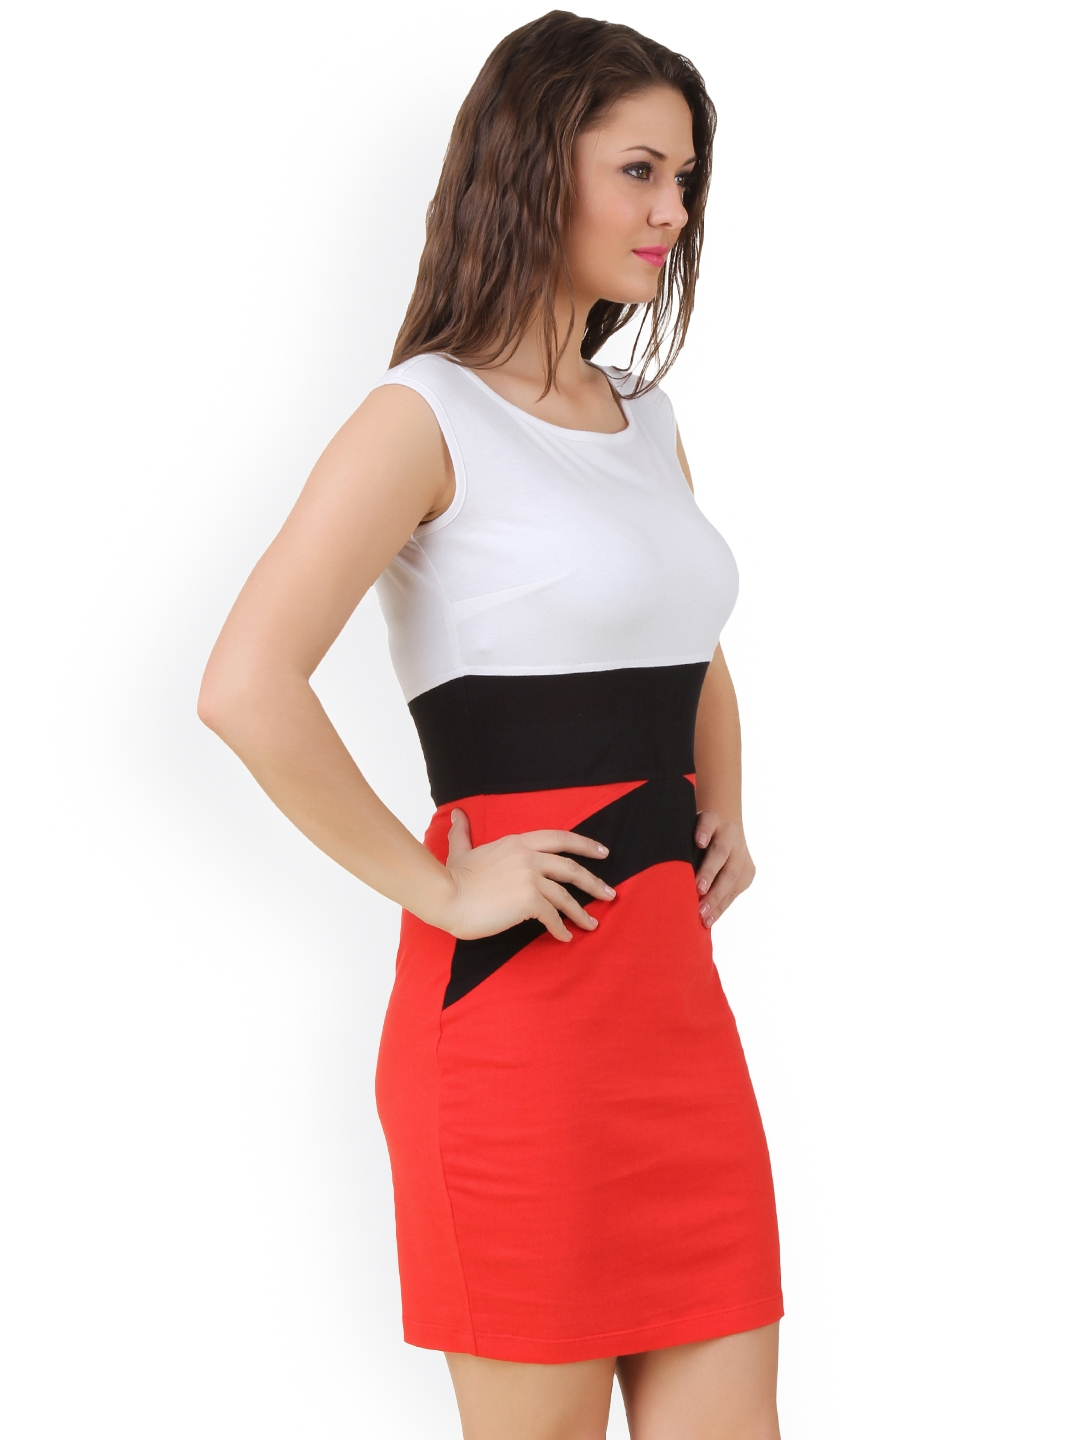 abe69afd4b Buy Texco White   Red Bodycon Dress - Dresses for Women 1291950